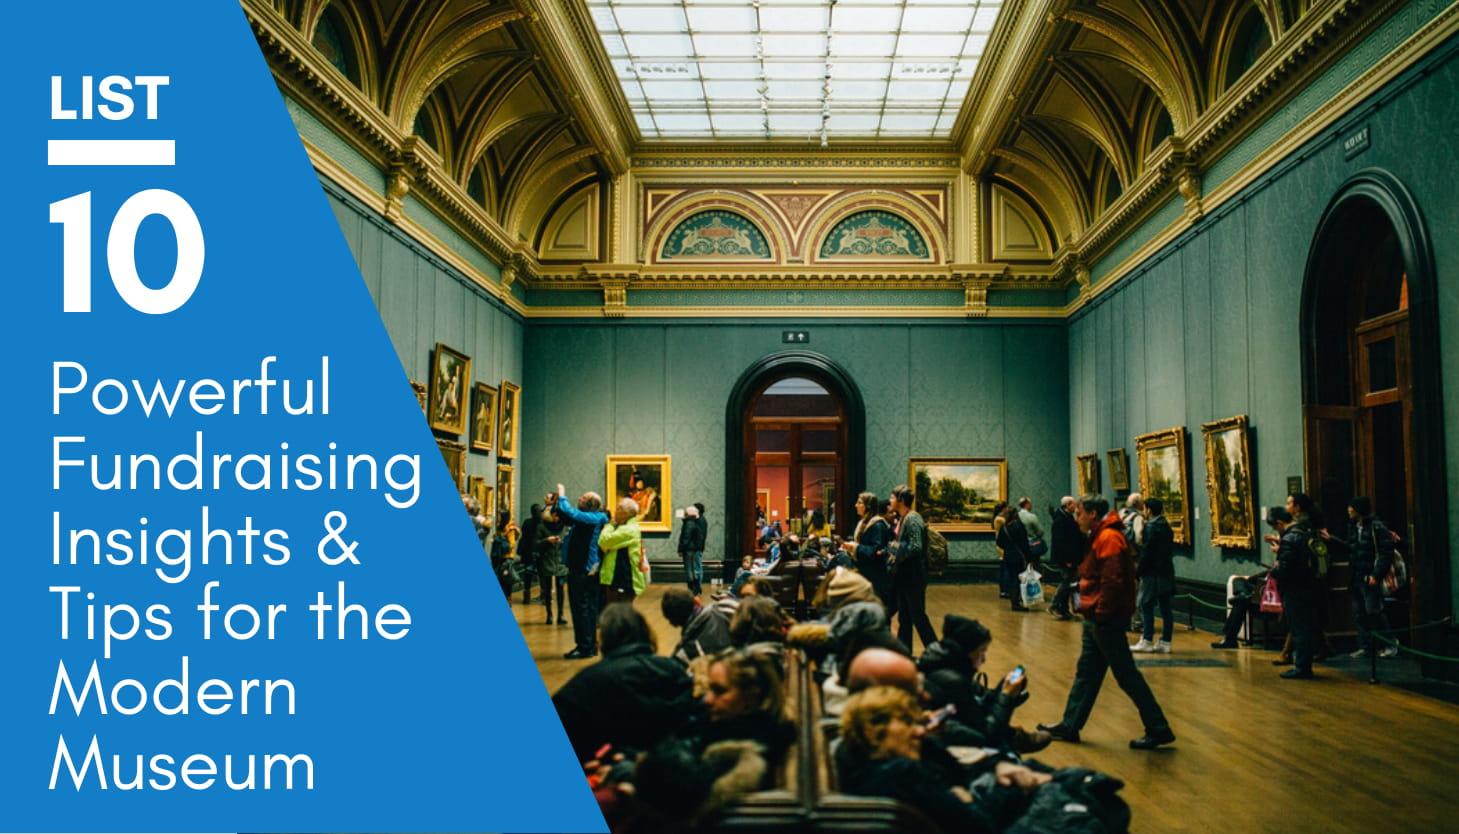 Museum Fundraising: 10 Powerful Insights and Tips for the Modern Museum